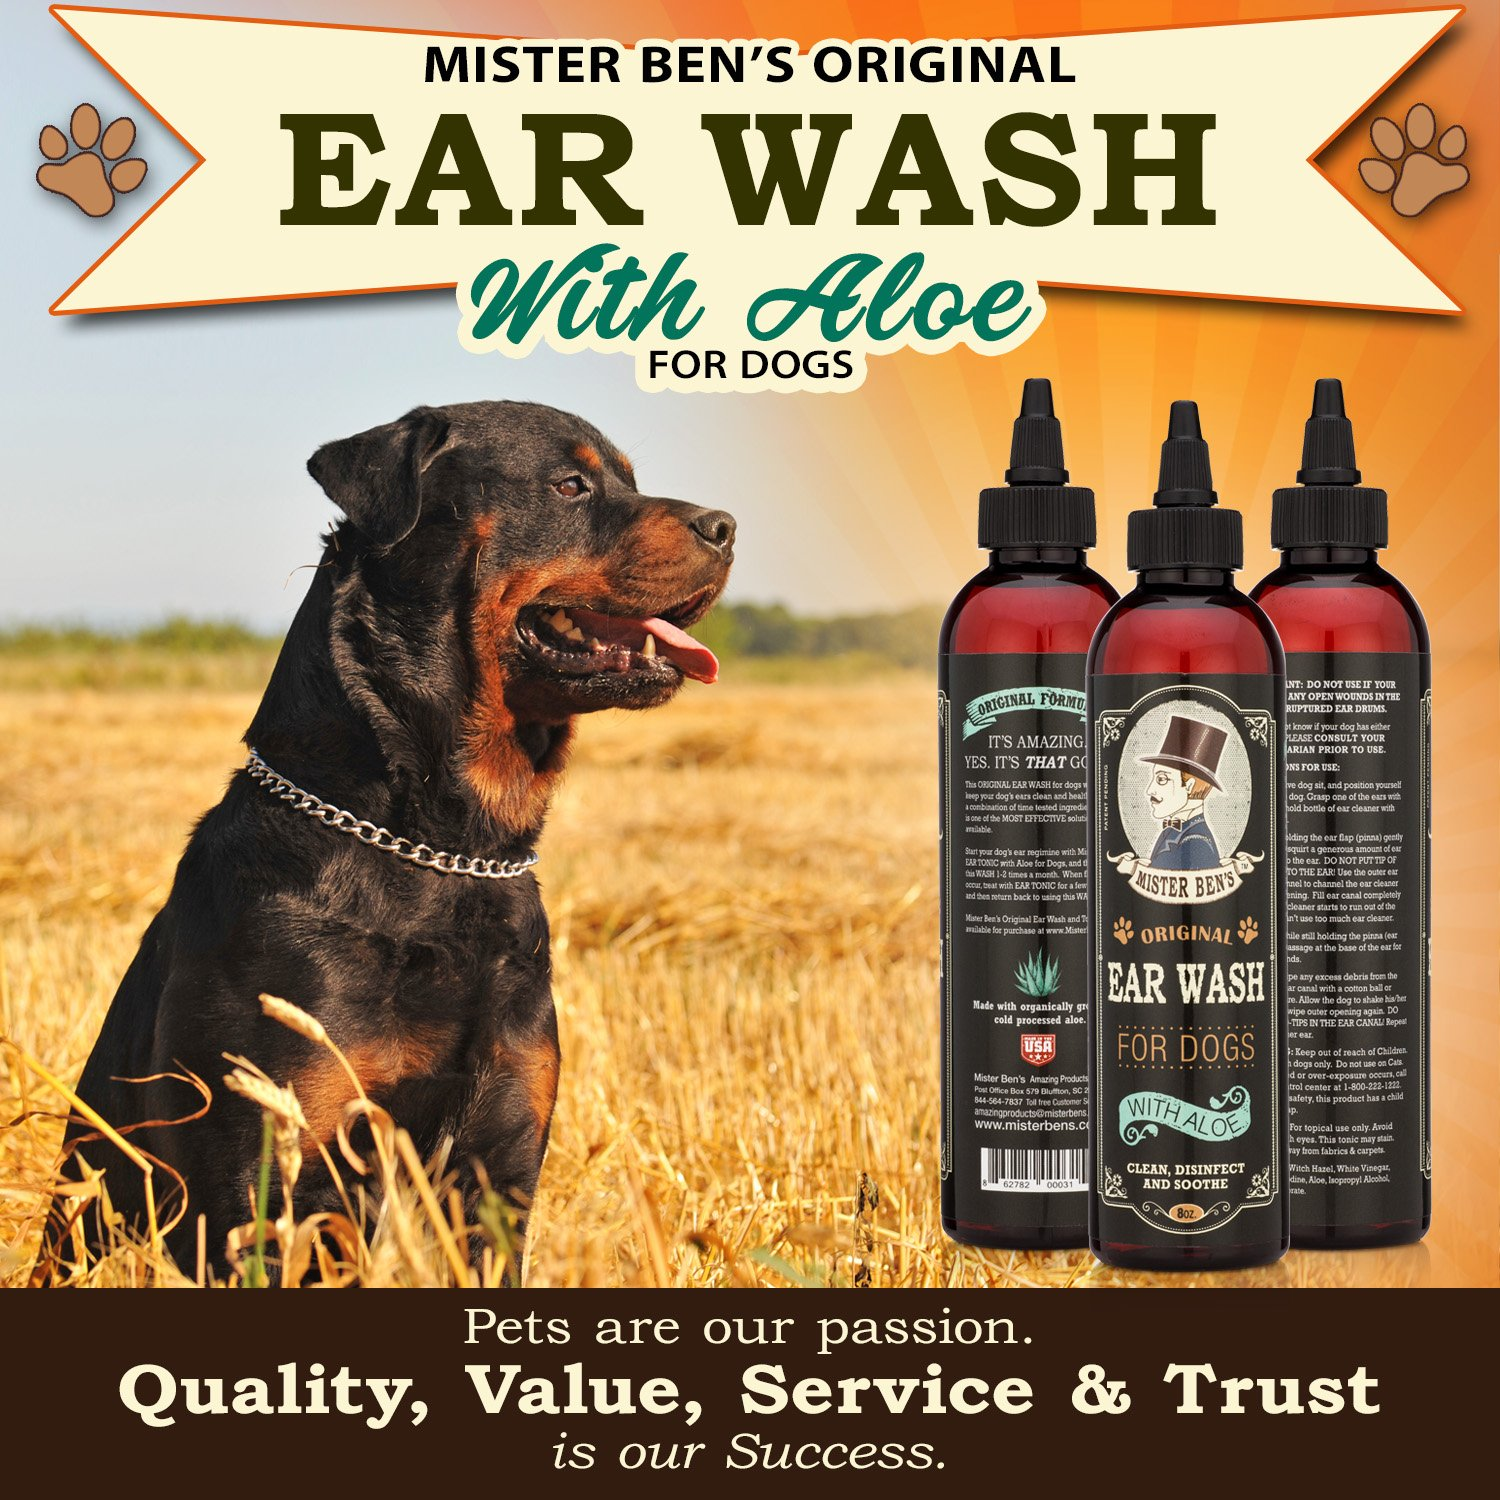 Most effective dog ear wash voted the best ear cleaning solution most effective dog ear wash voted the best ear cleaning solution for dogs providing fast relief from dog ear infections irritations itching odors solutioingenieria Gallery